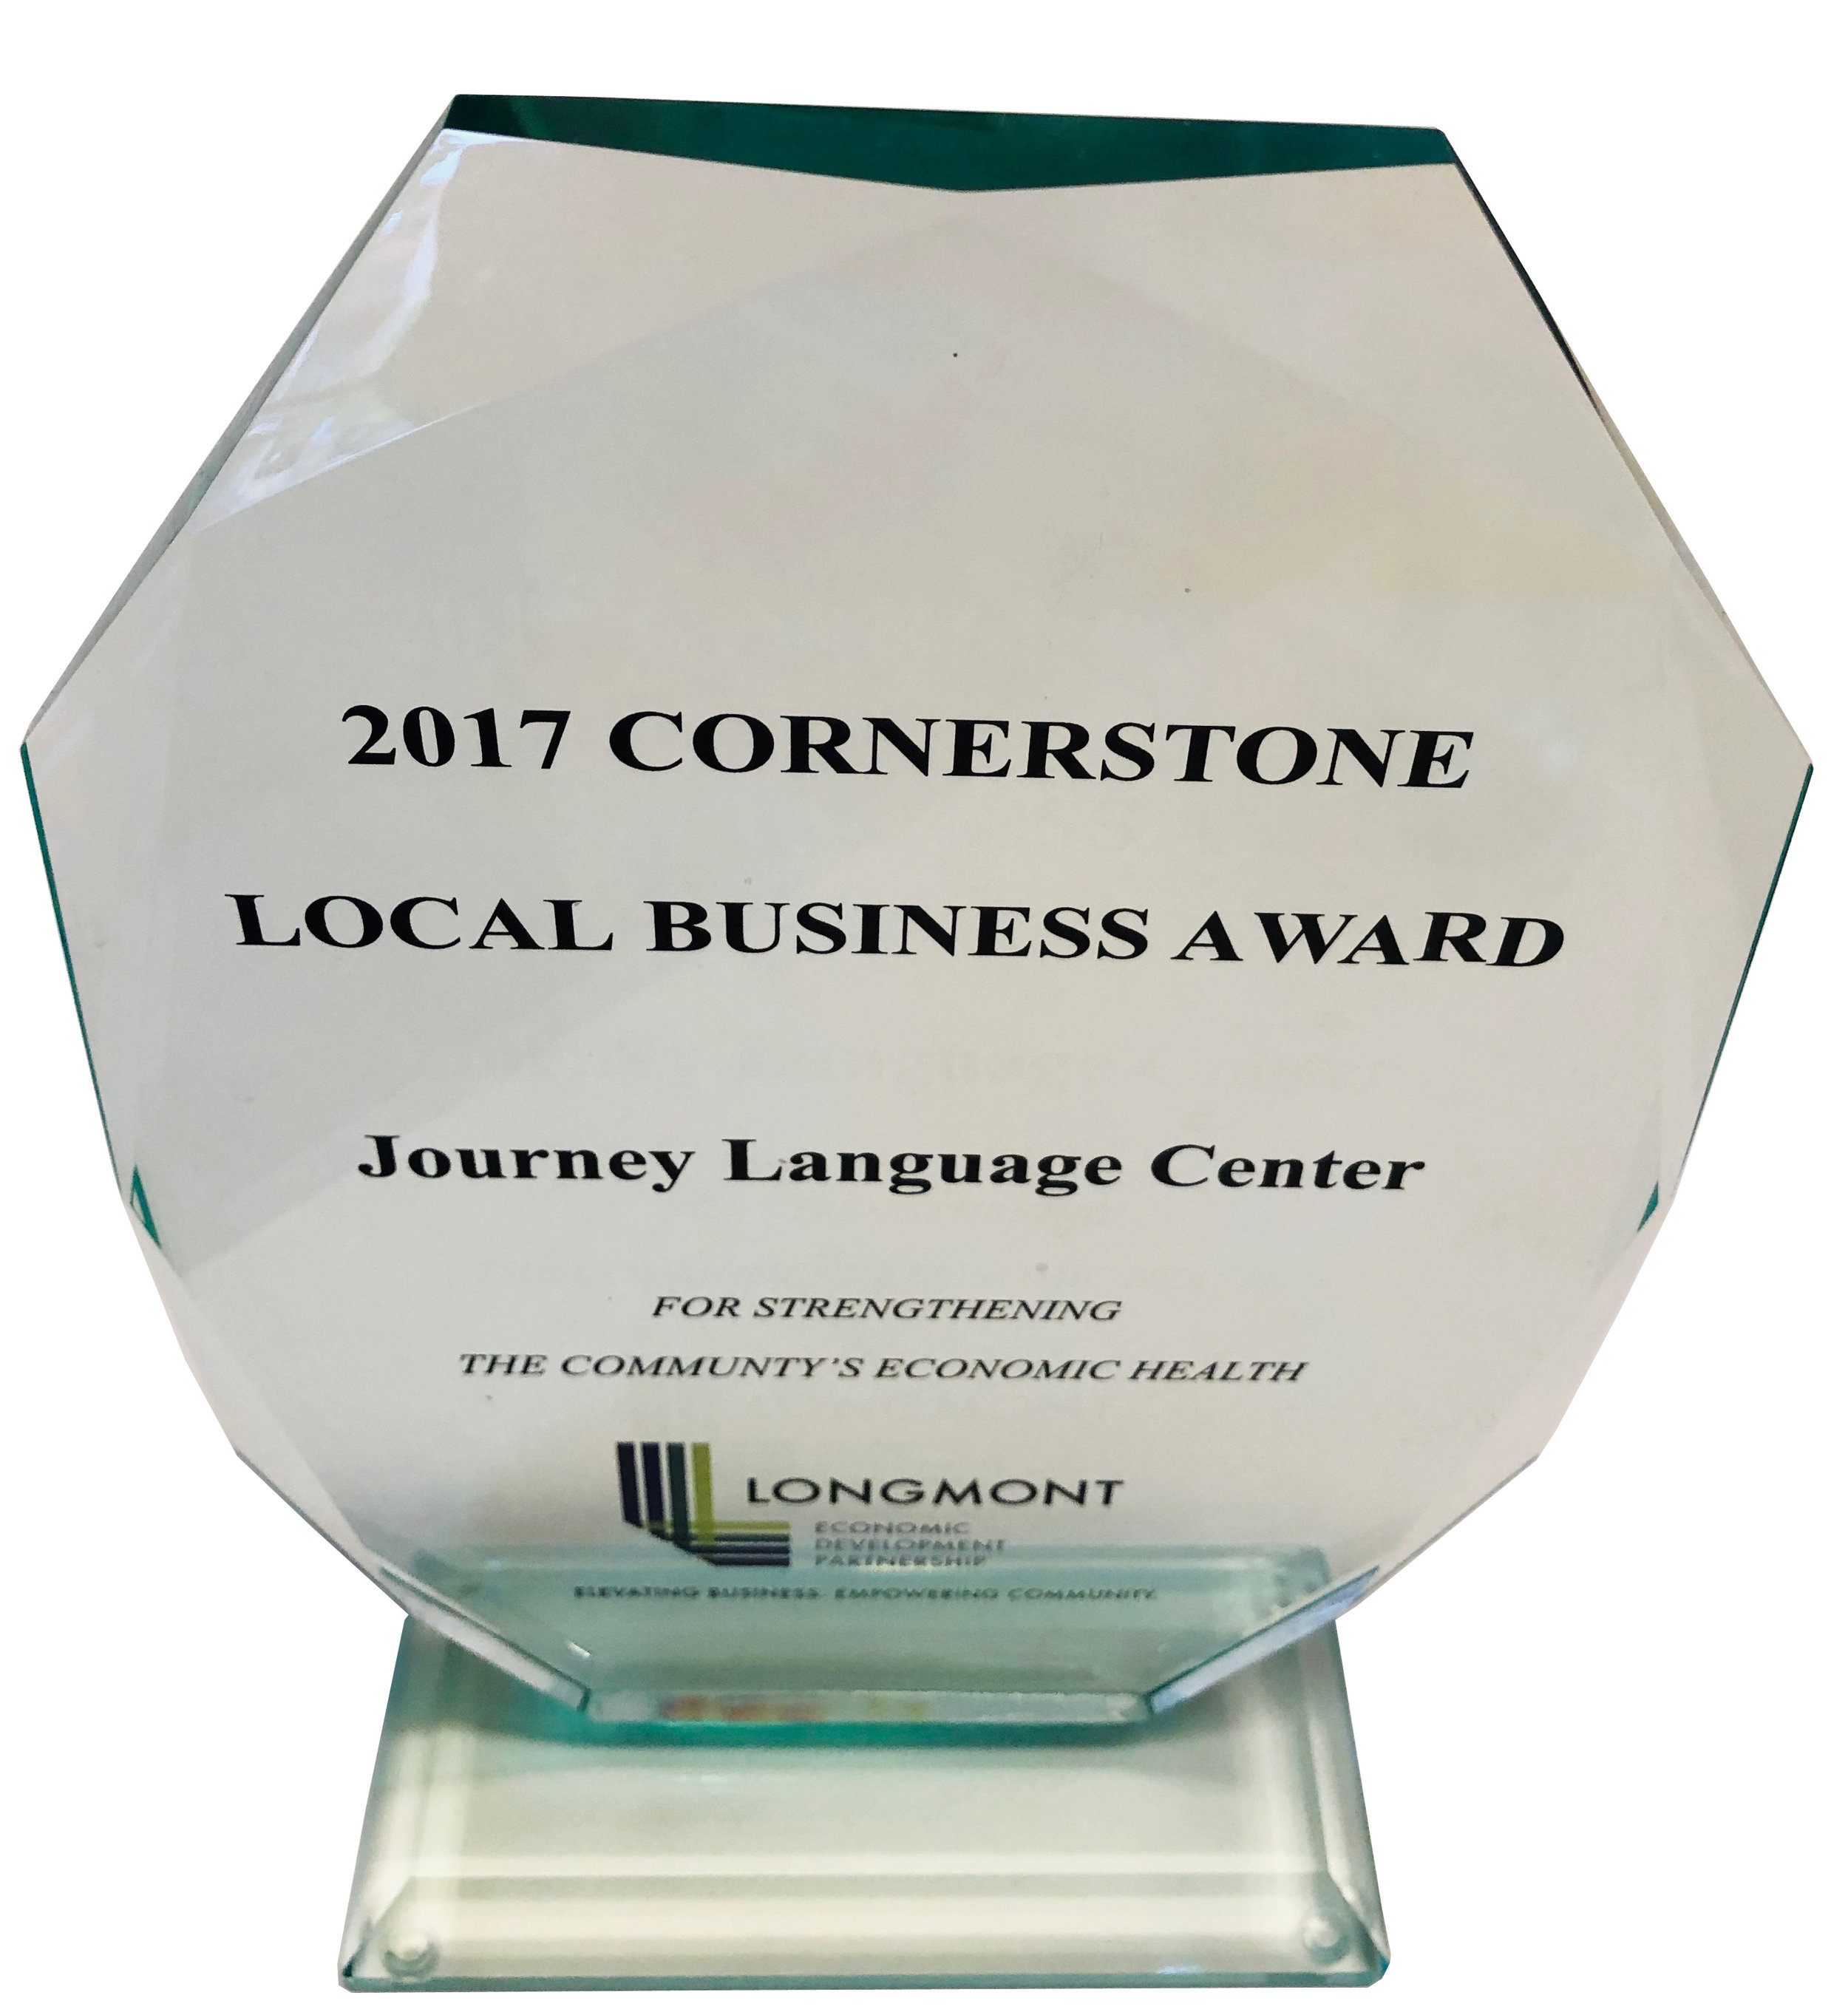 JLCBusinessAward.jpg